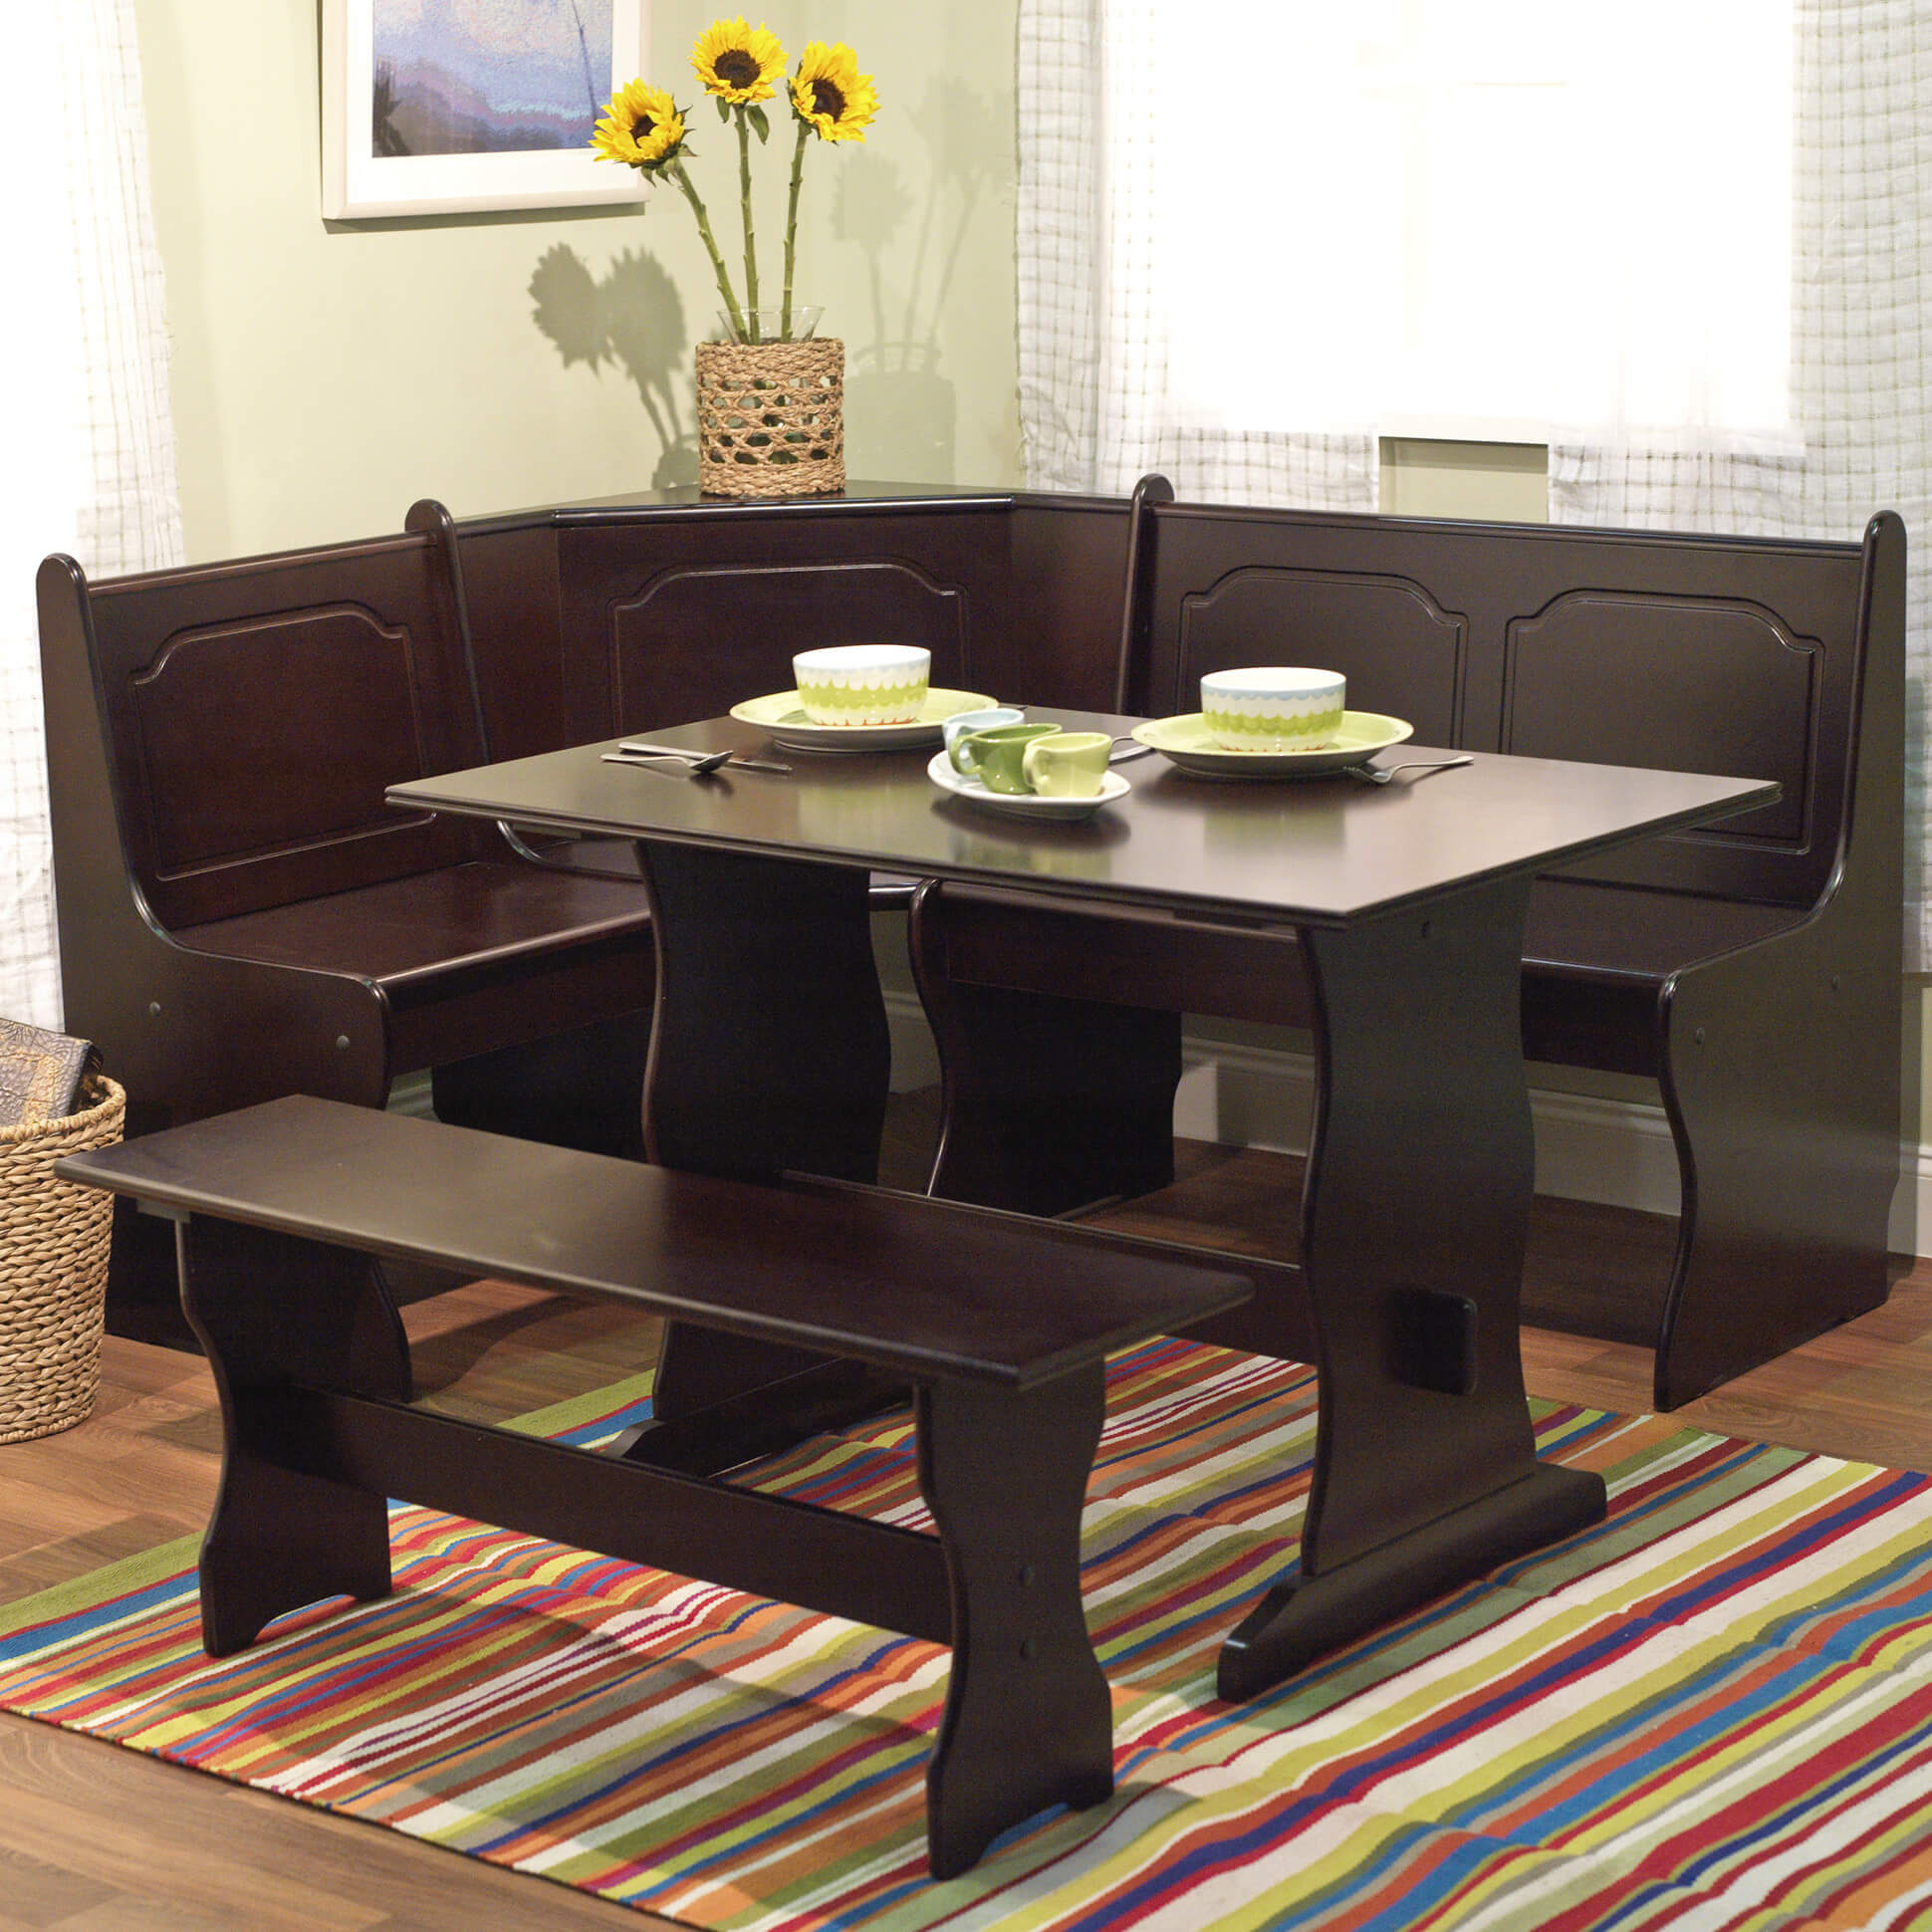 breakfast nook furniture sets kitchen tables with storage 2 TMS Breakfast Nook